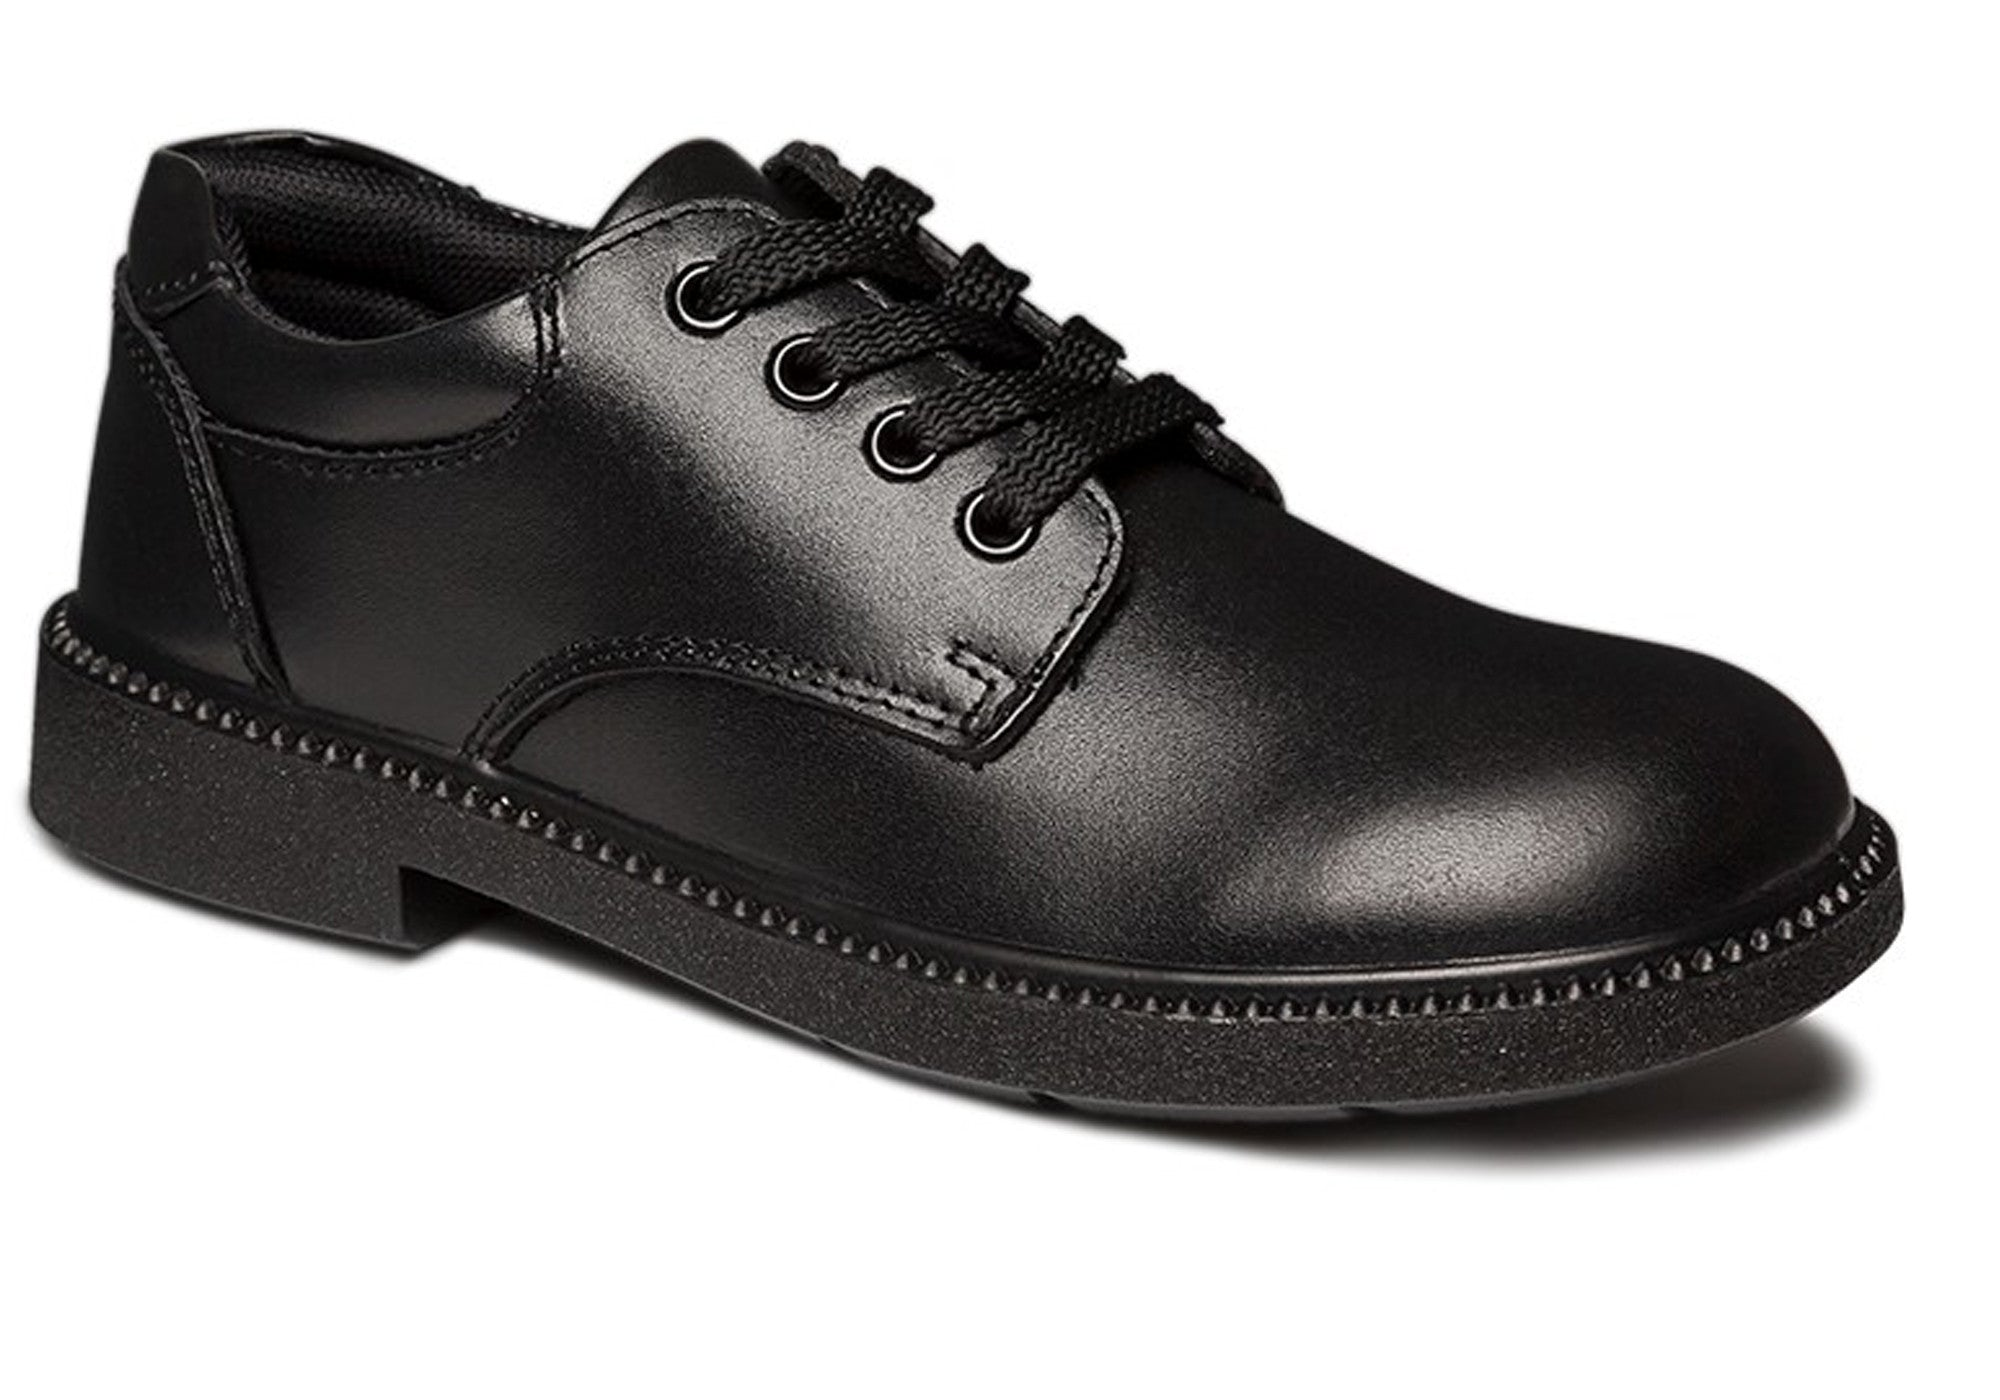 School Leather Shoes Uk